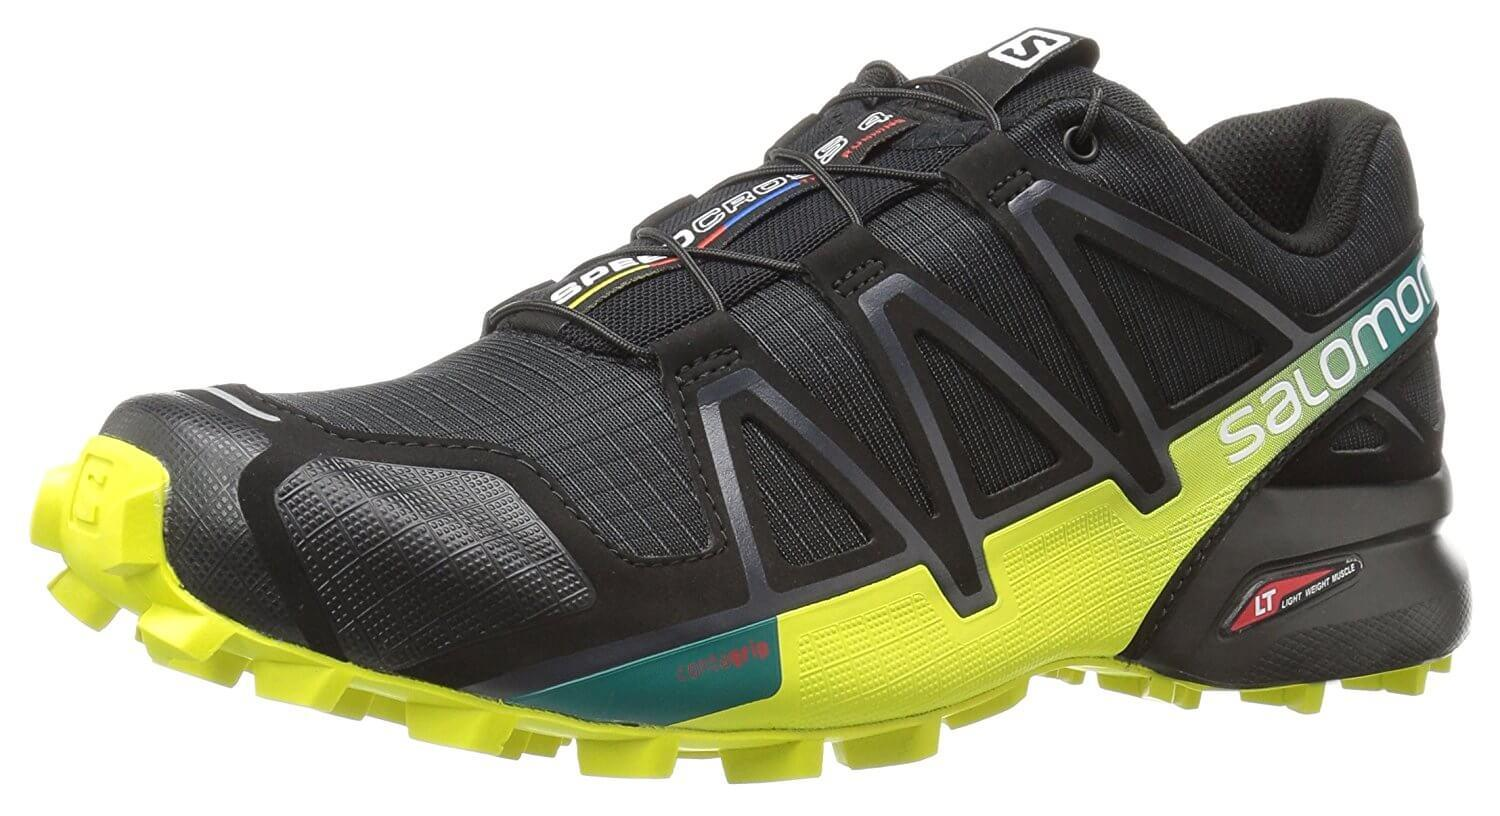 Best Obstacle Course Racing Shoes Reviewed  70becd7e9